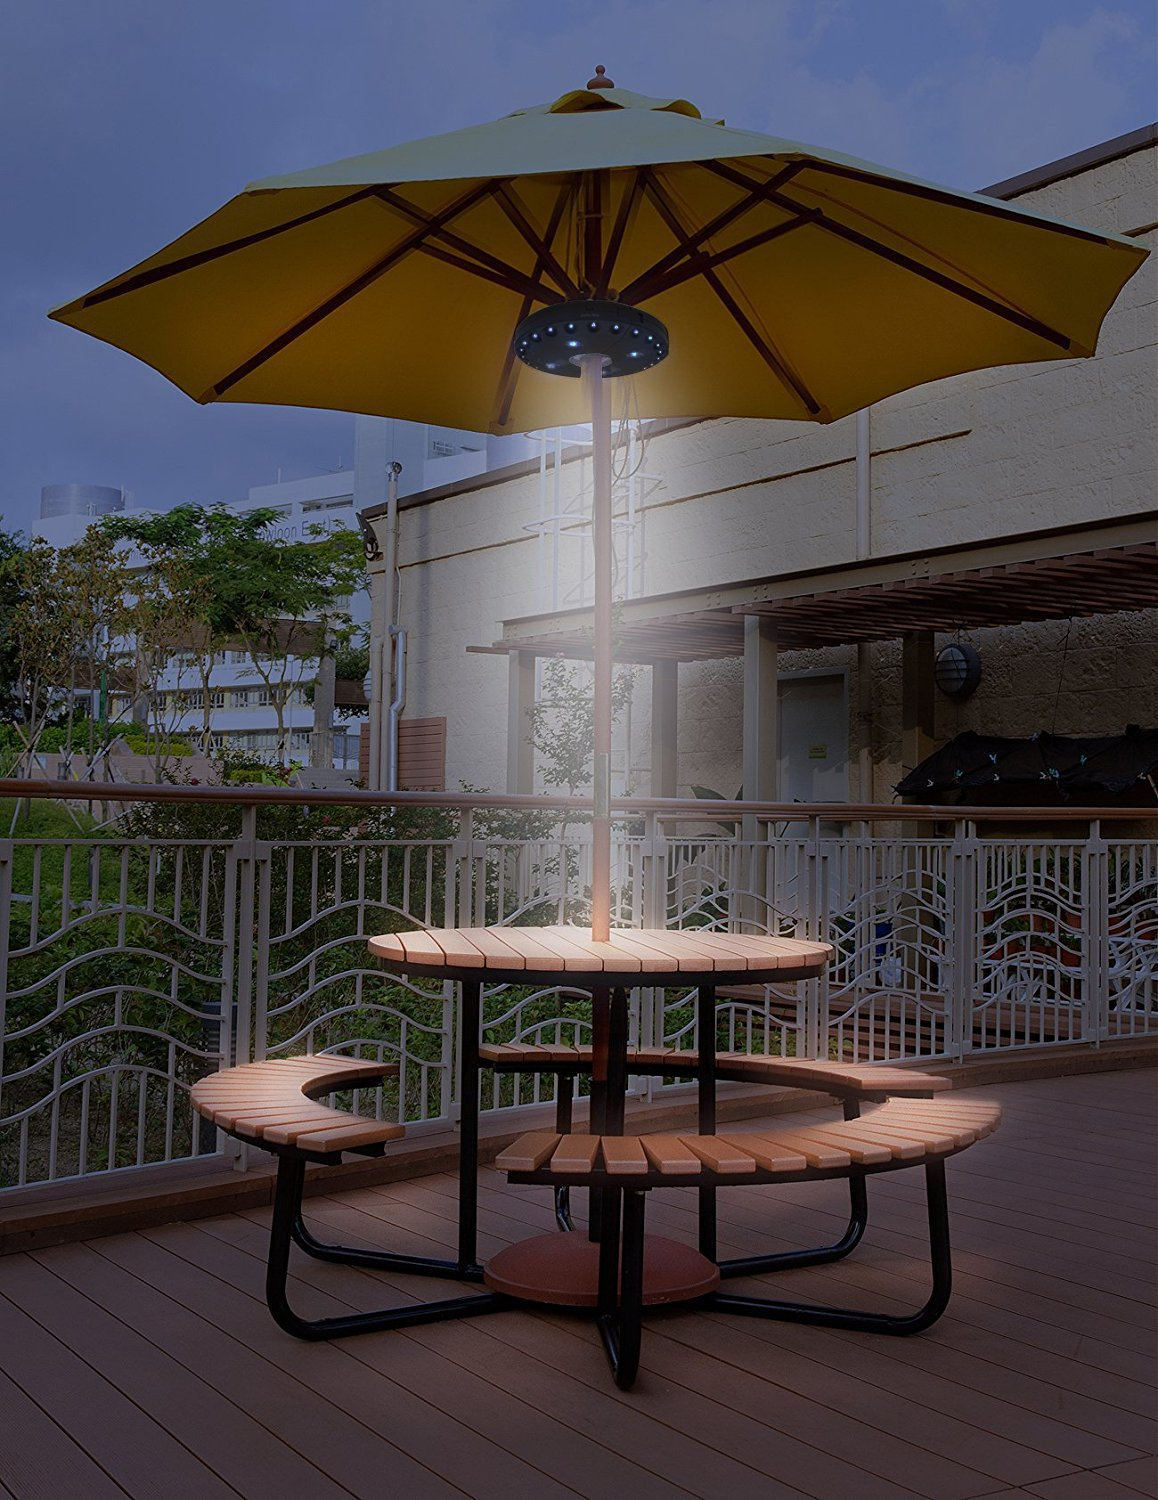 Patio Umbrella Lights - 3 Lighting Mode Umbrella Lights Battery Operated Umbrella Pole Light Outdoor Lighting - 28 LED Night Light 220 lux for Patio Umbrellas, Outdoor Use or Camping Tents